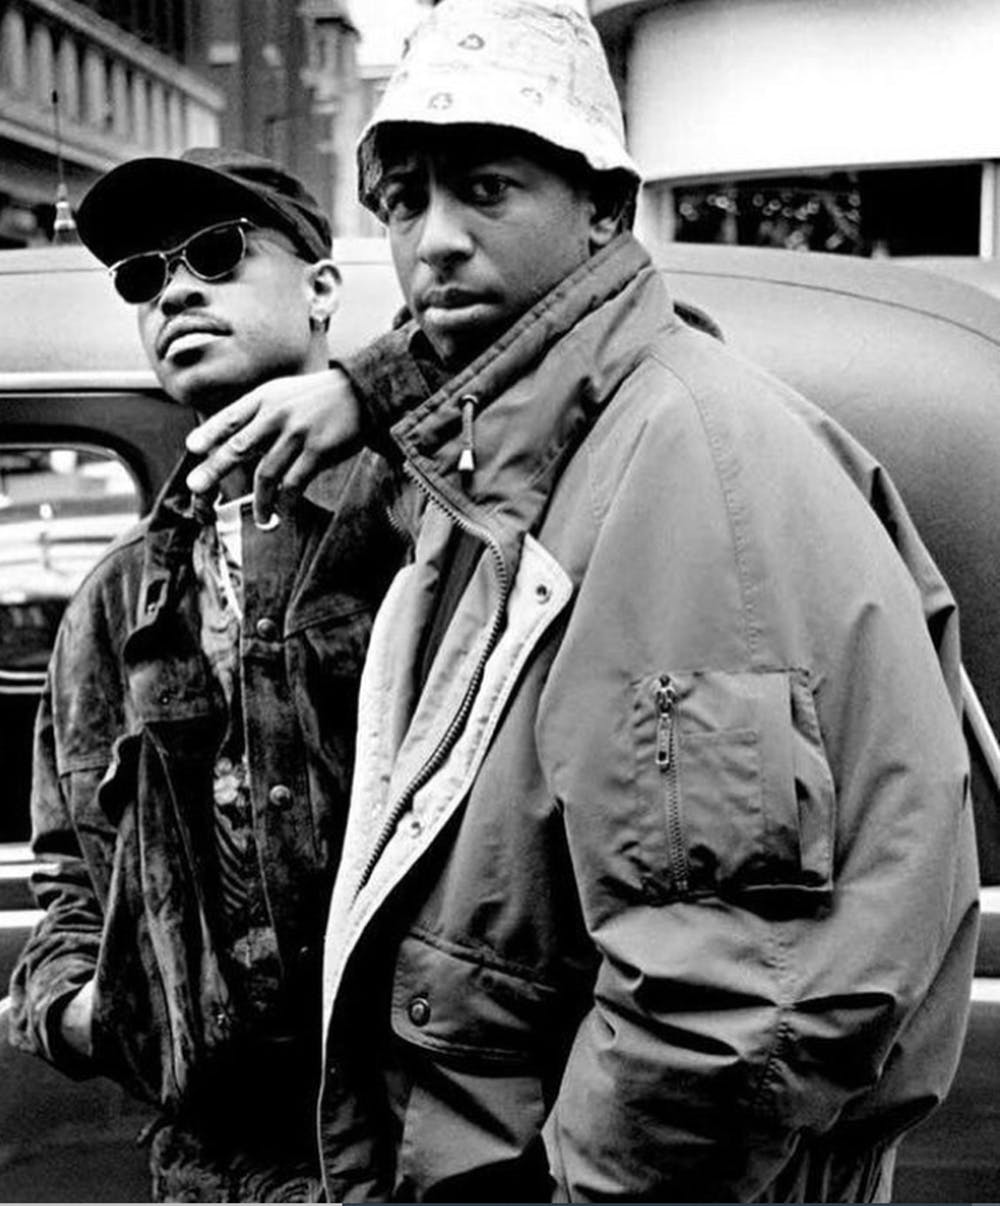 Album Review: Gang Starr doesn't miss a beat with 'One Of The Best Yet'